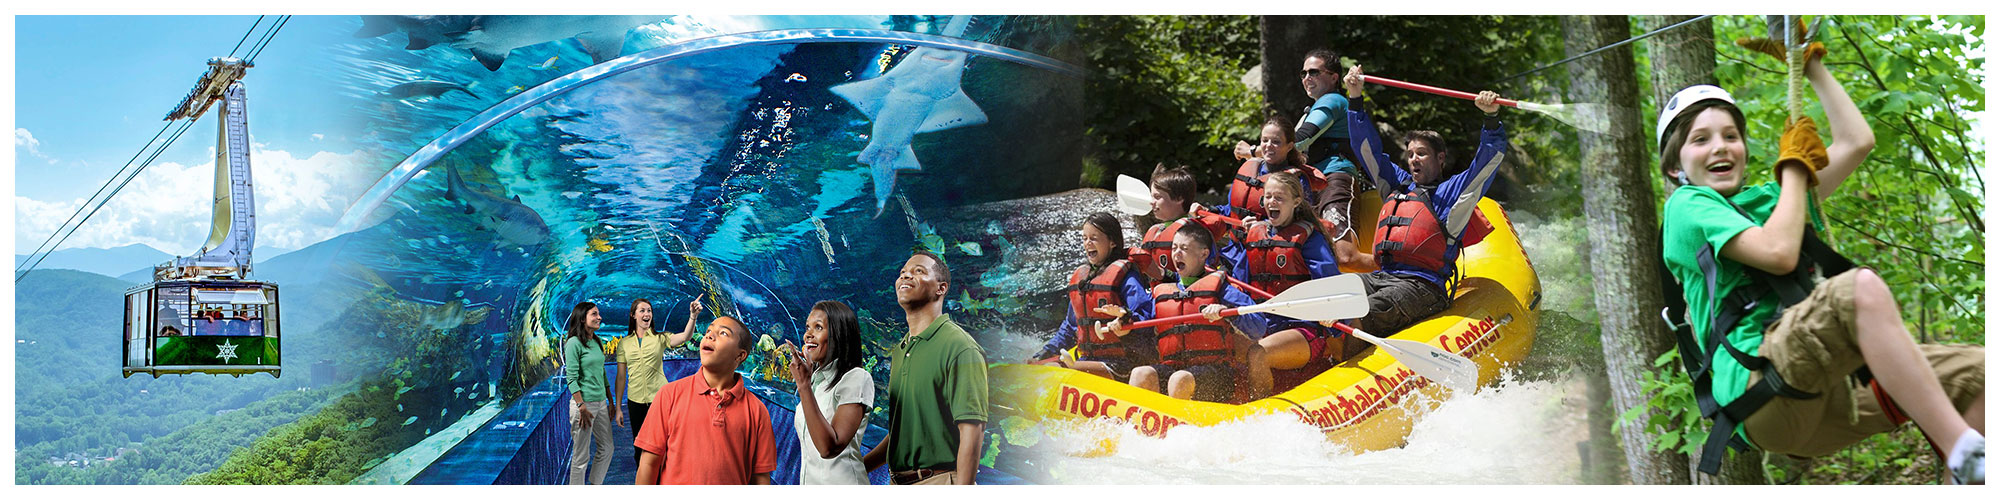 Contact Us (Header Background) | Gatlinburg Attractions